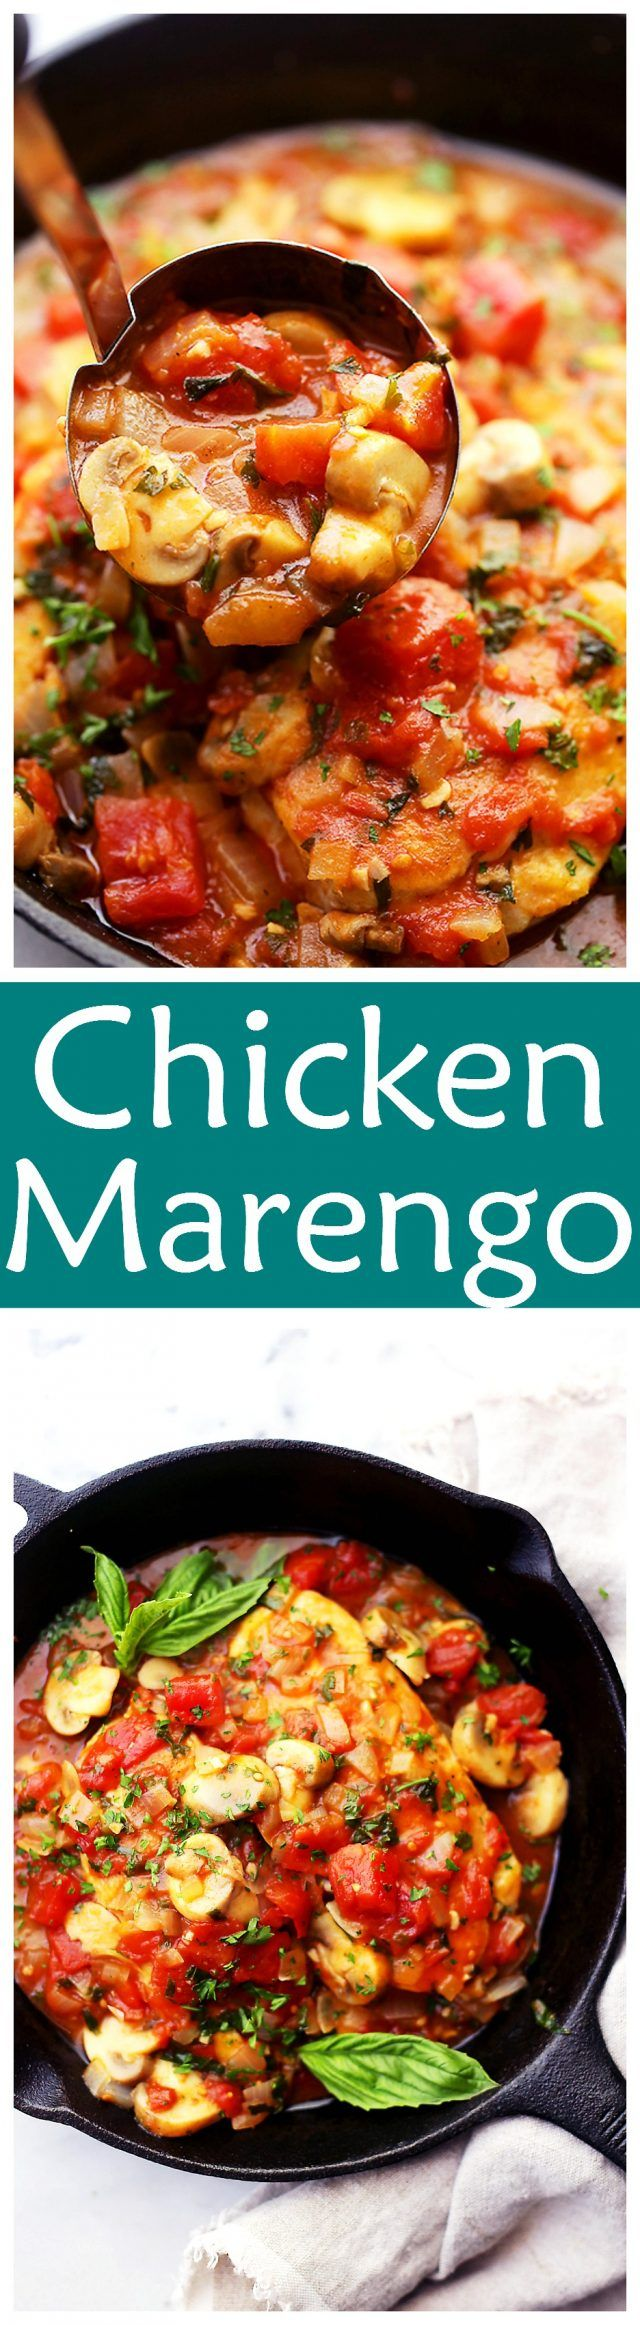 Chicken Marengo - Saucy, a little spicy, and a whole lot delicious French-inspired chicken dish topped with tomatoes and mushrooms! #ad with @huntschef #HuntsDifference